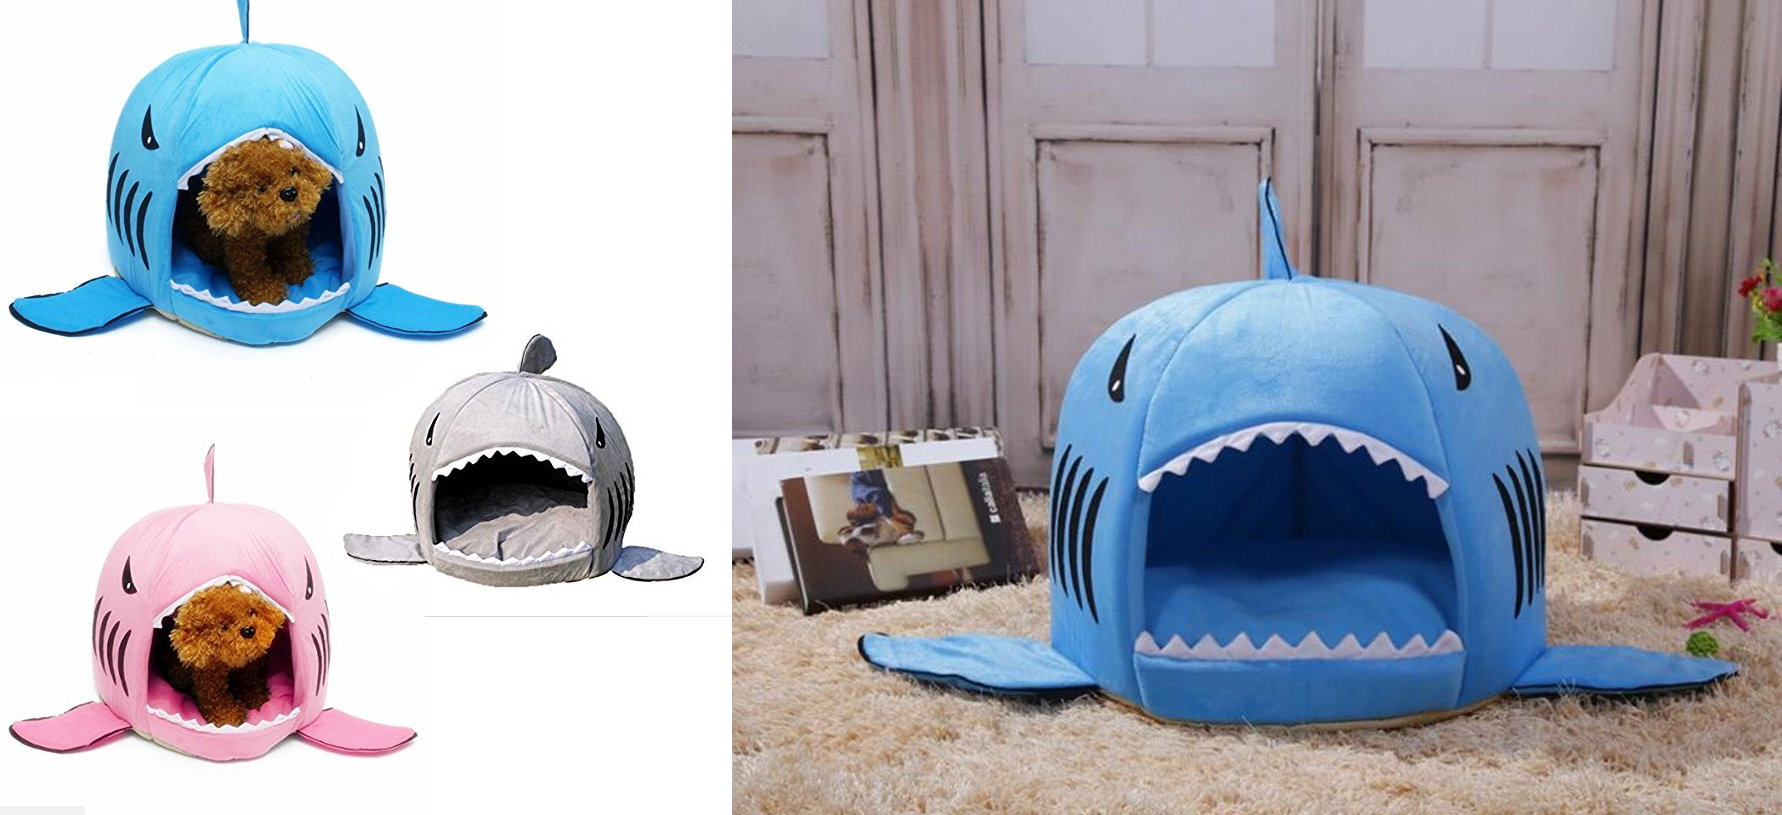 funny-dog-cat-gift-ideas-pet-bed-kamier-shark-round-washable-soft-cotton-dog-cat-pet-bed